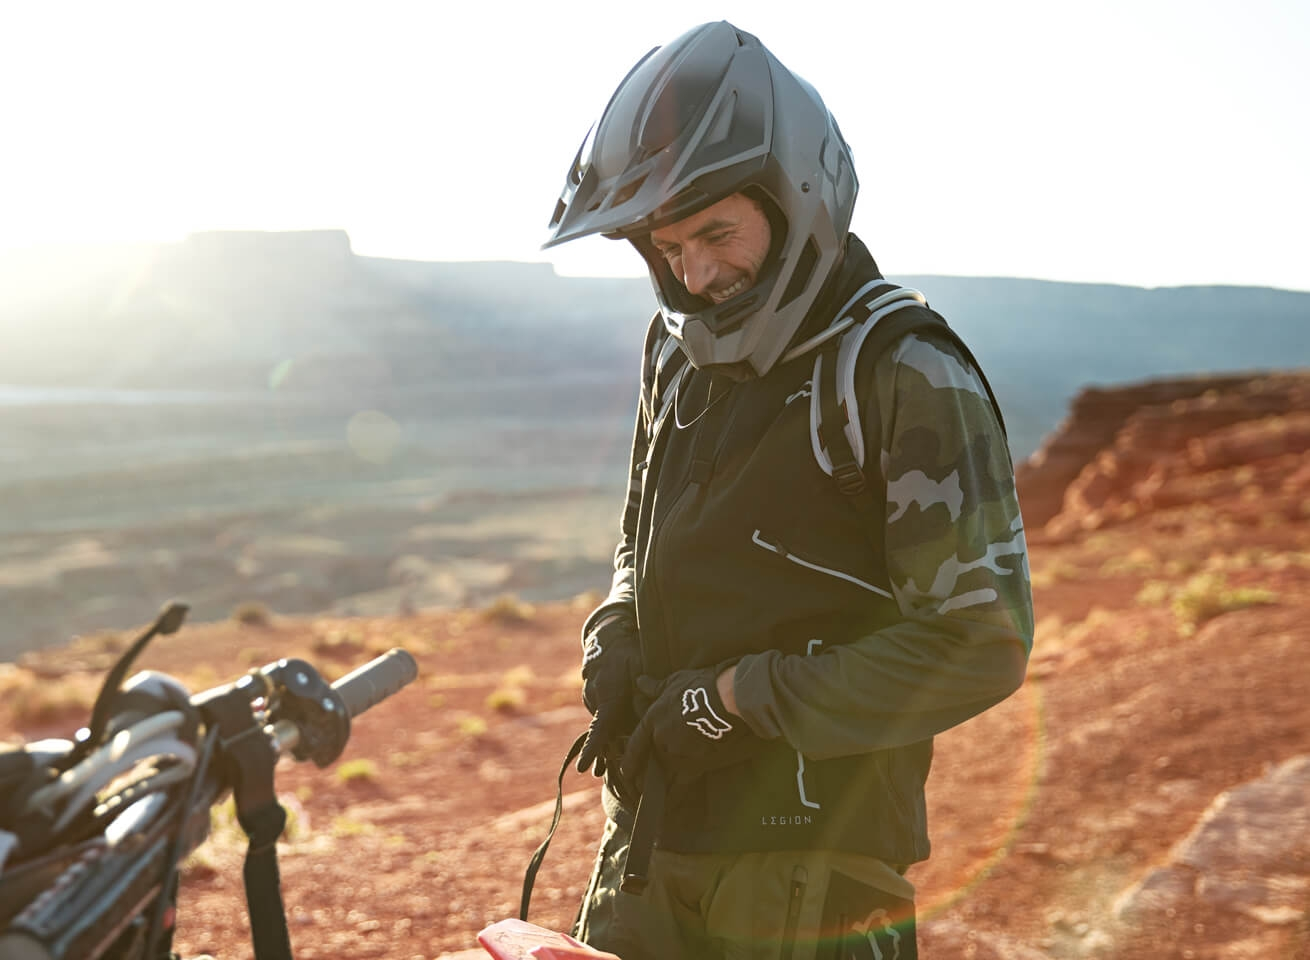 https://s7d2.scene7.com/is/content/FoxRacing/FOX_CMS/LANDING PAGES/USA/2019/LEGION LINE/LEGION_ECOM_LOOK_03.mp4 shot